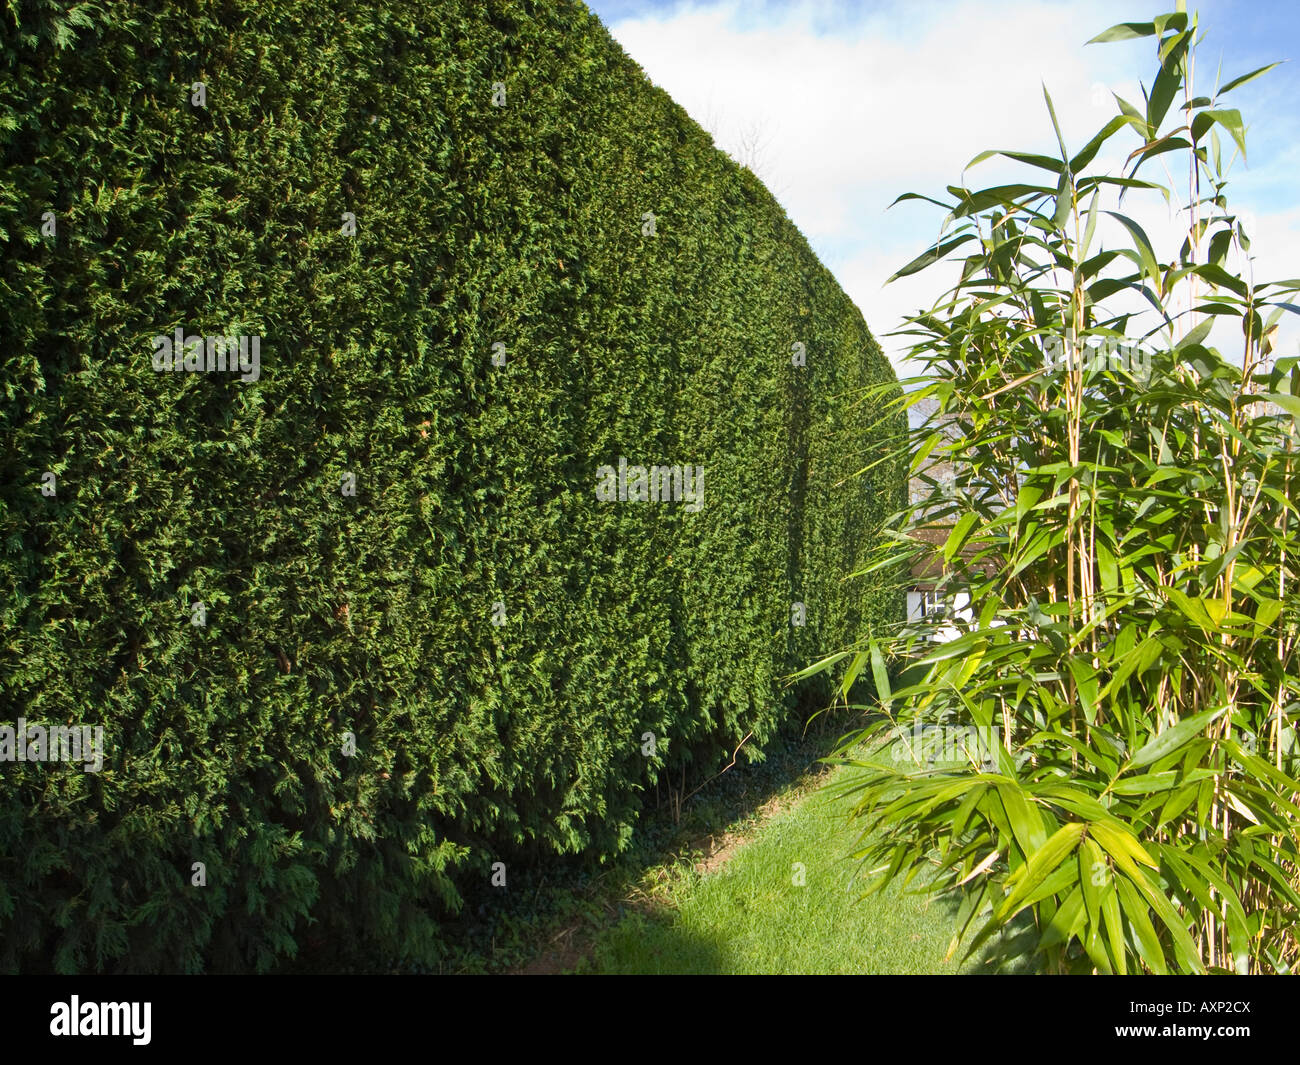 Tall leylandii hedge after annual trimming - Stock Image